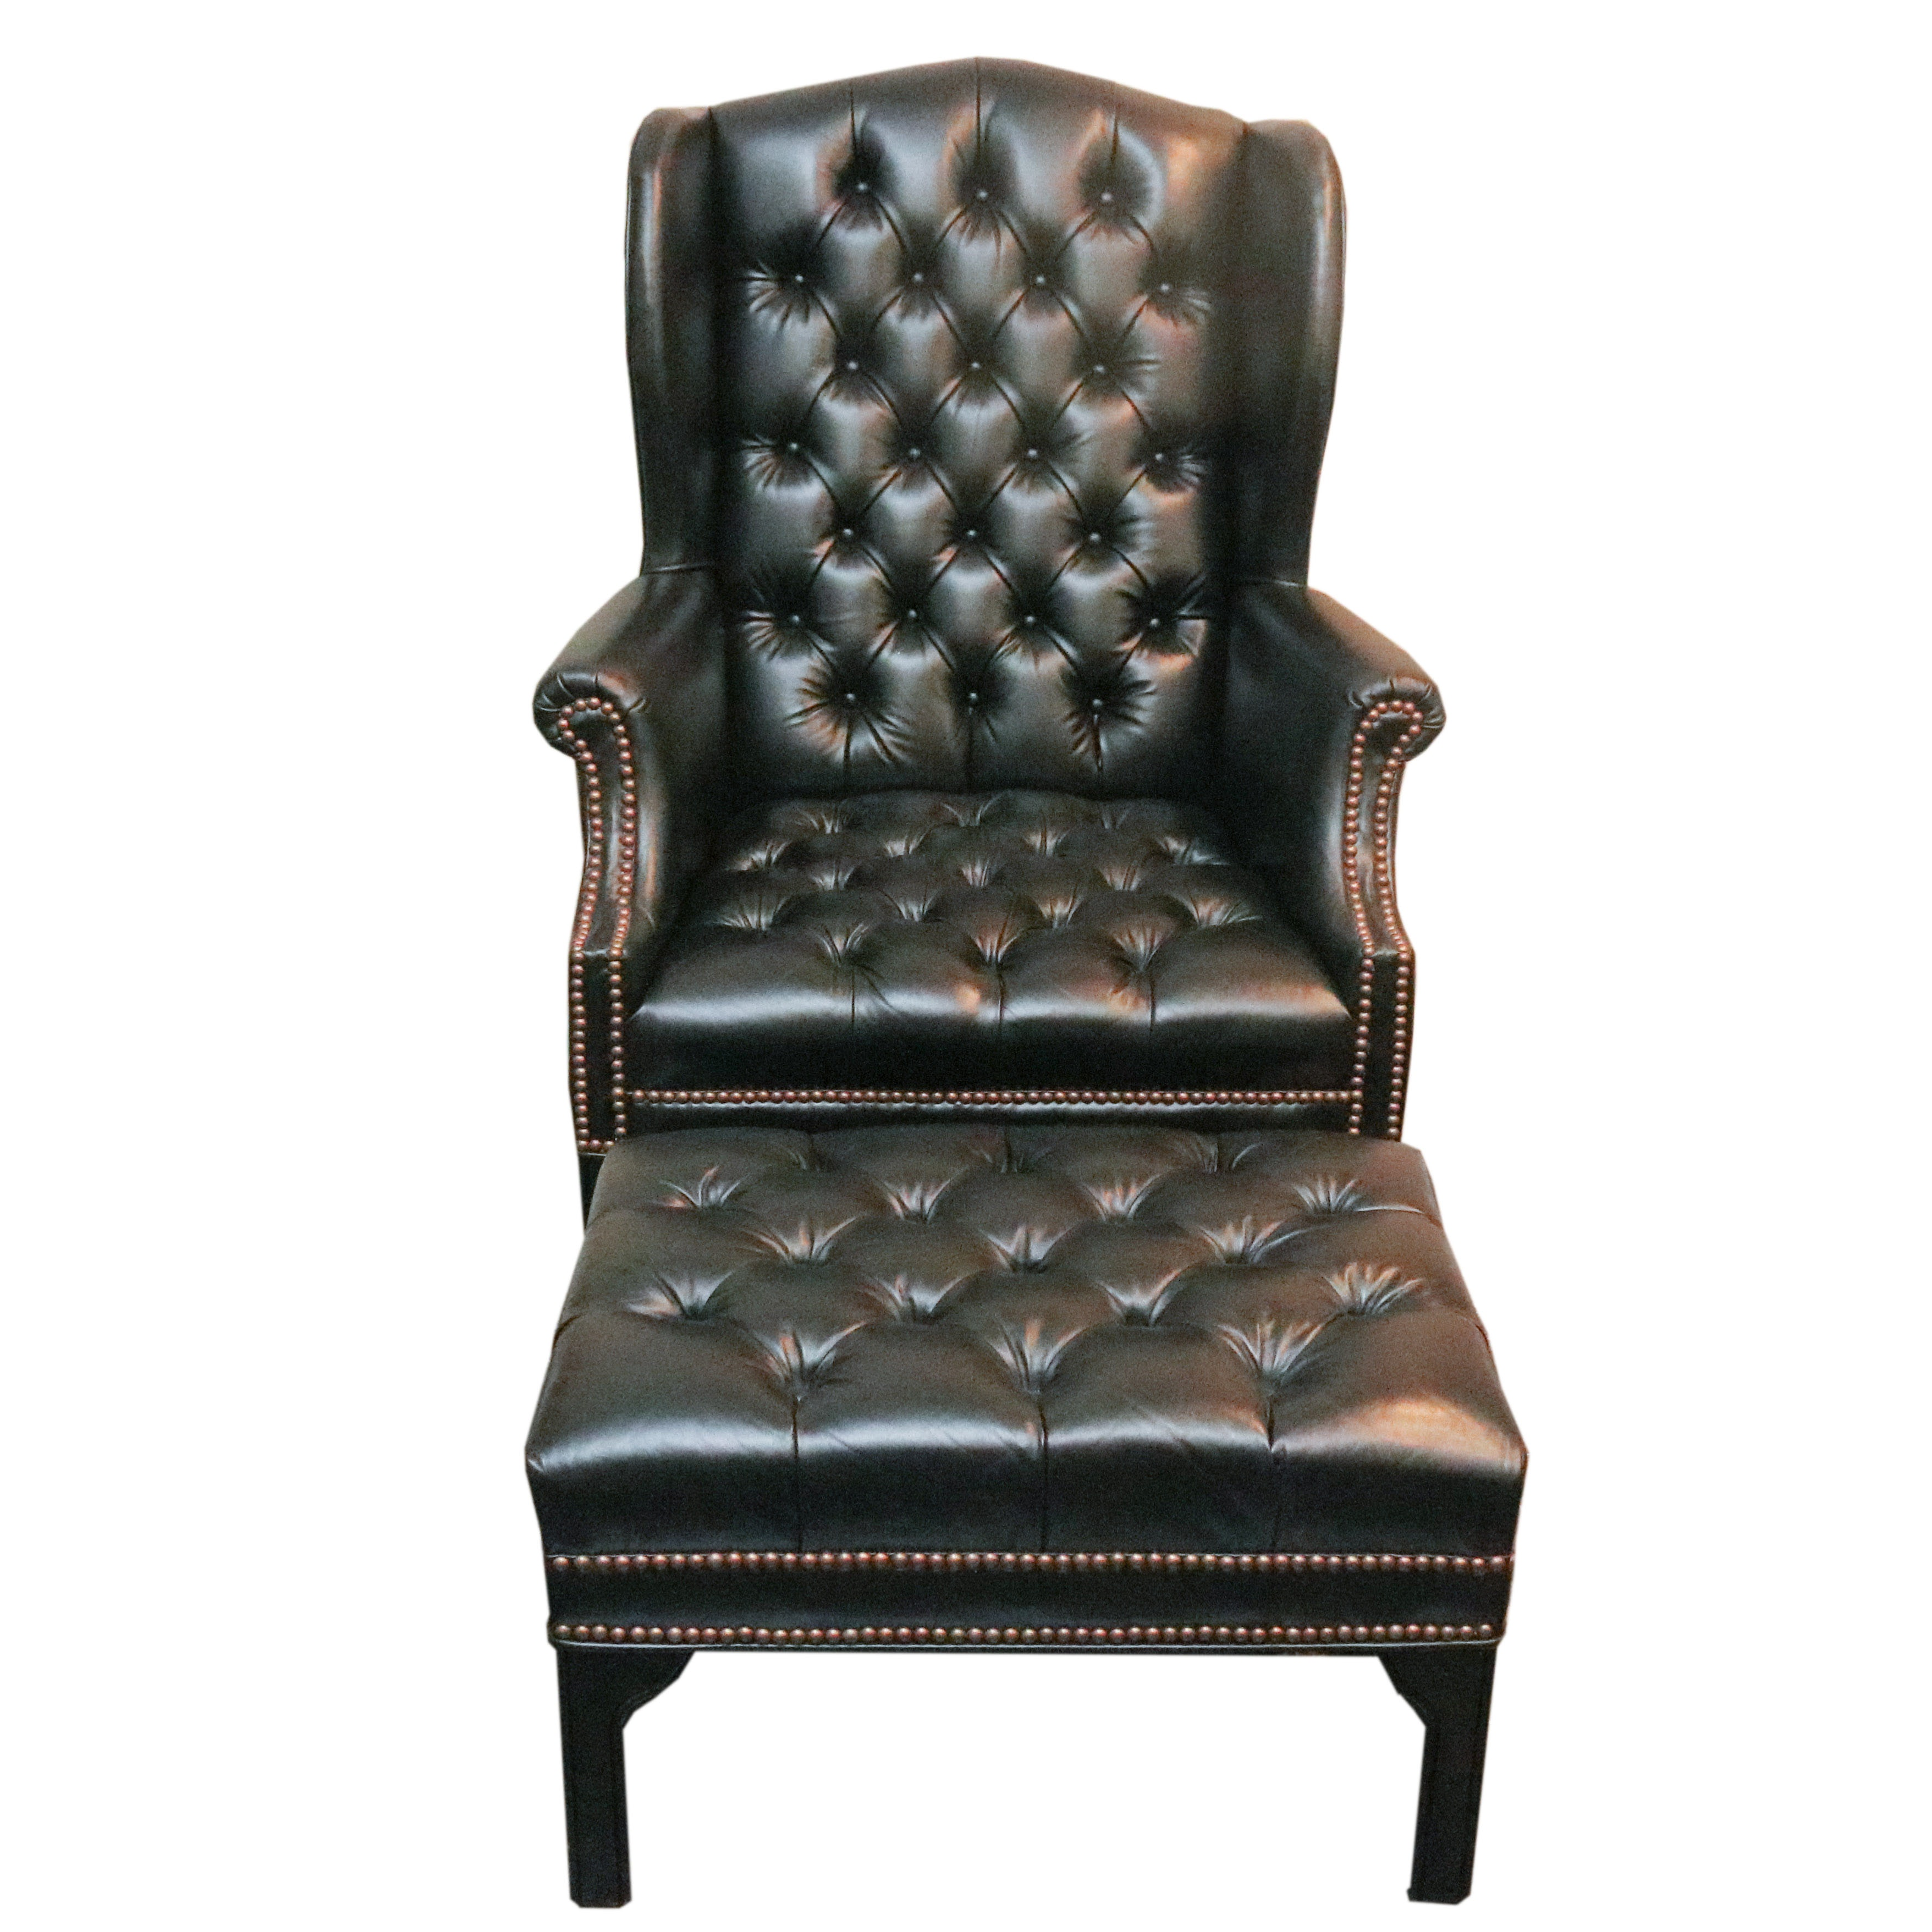 Awesome Fairfield Chair Company Wingback Chair And Ottoman ...